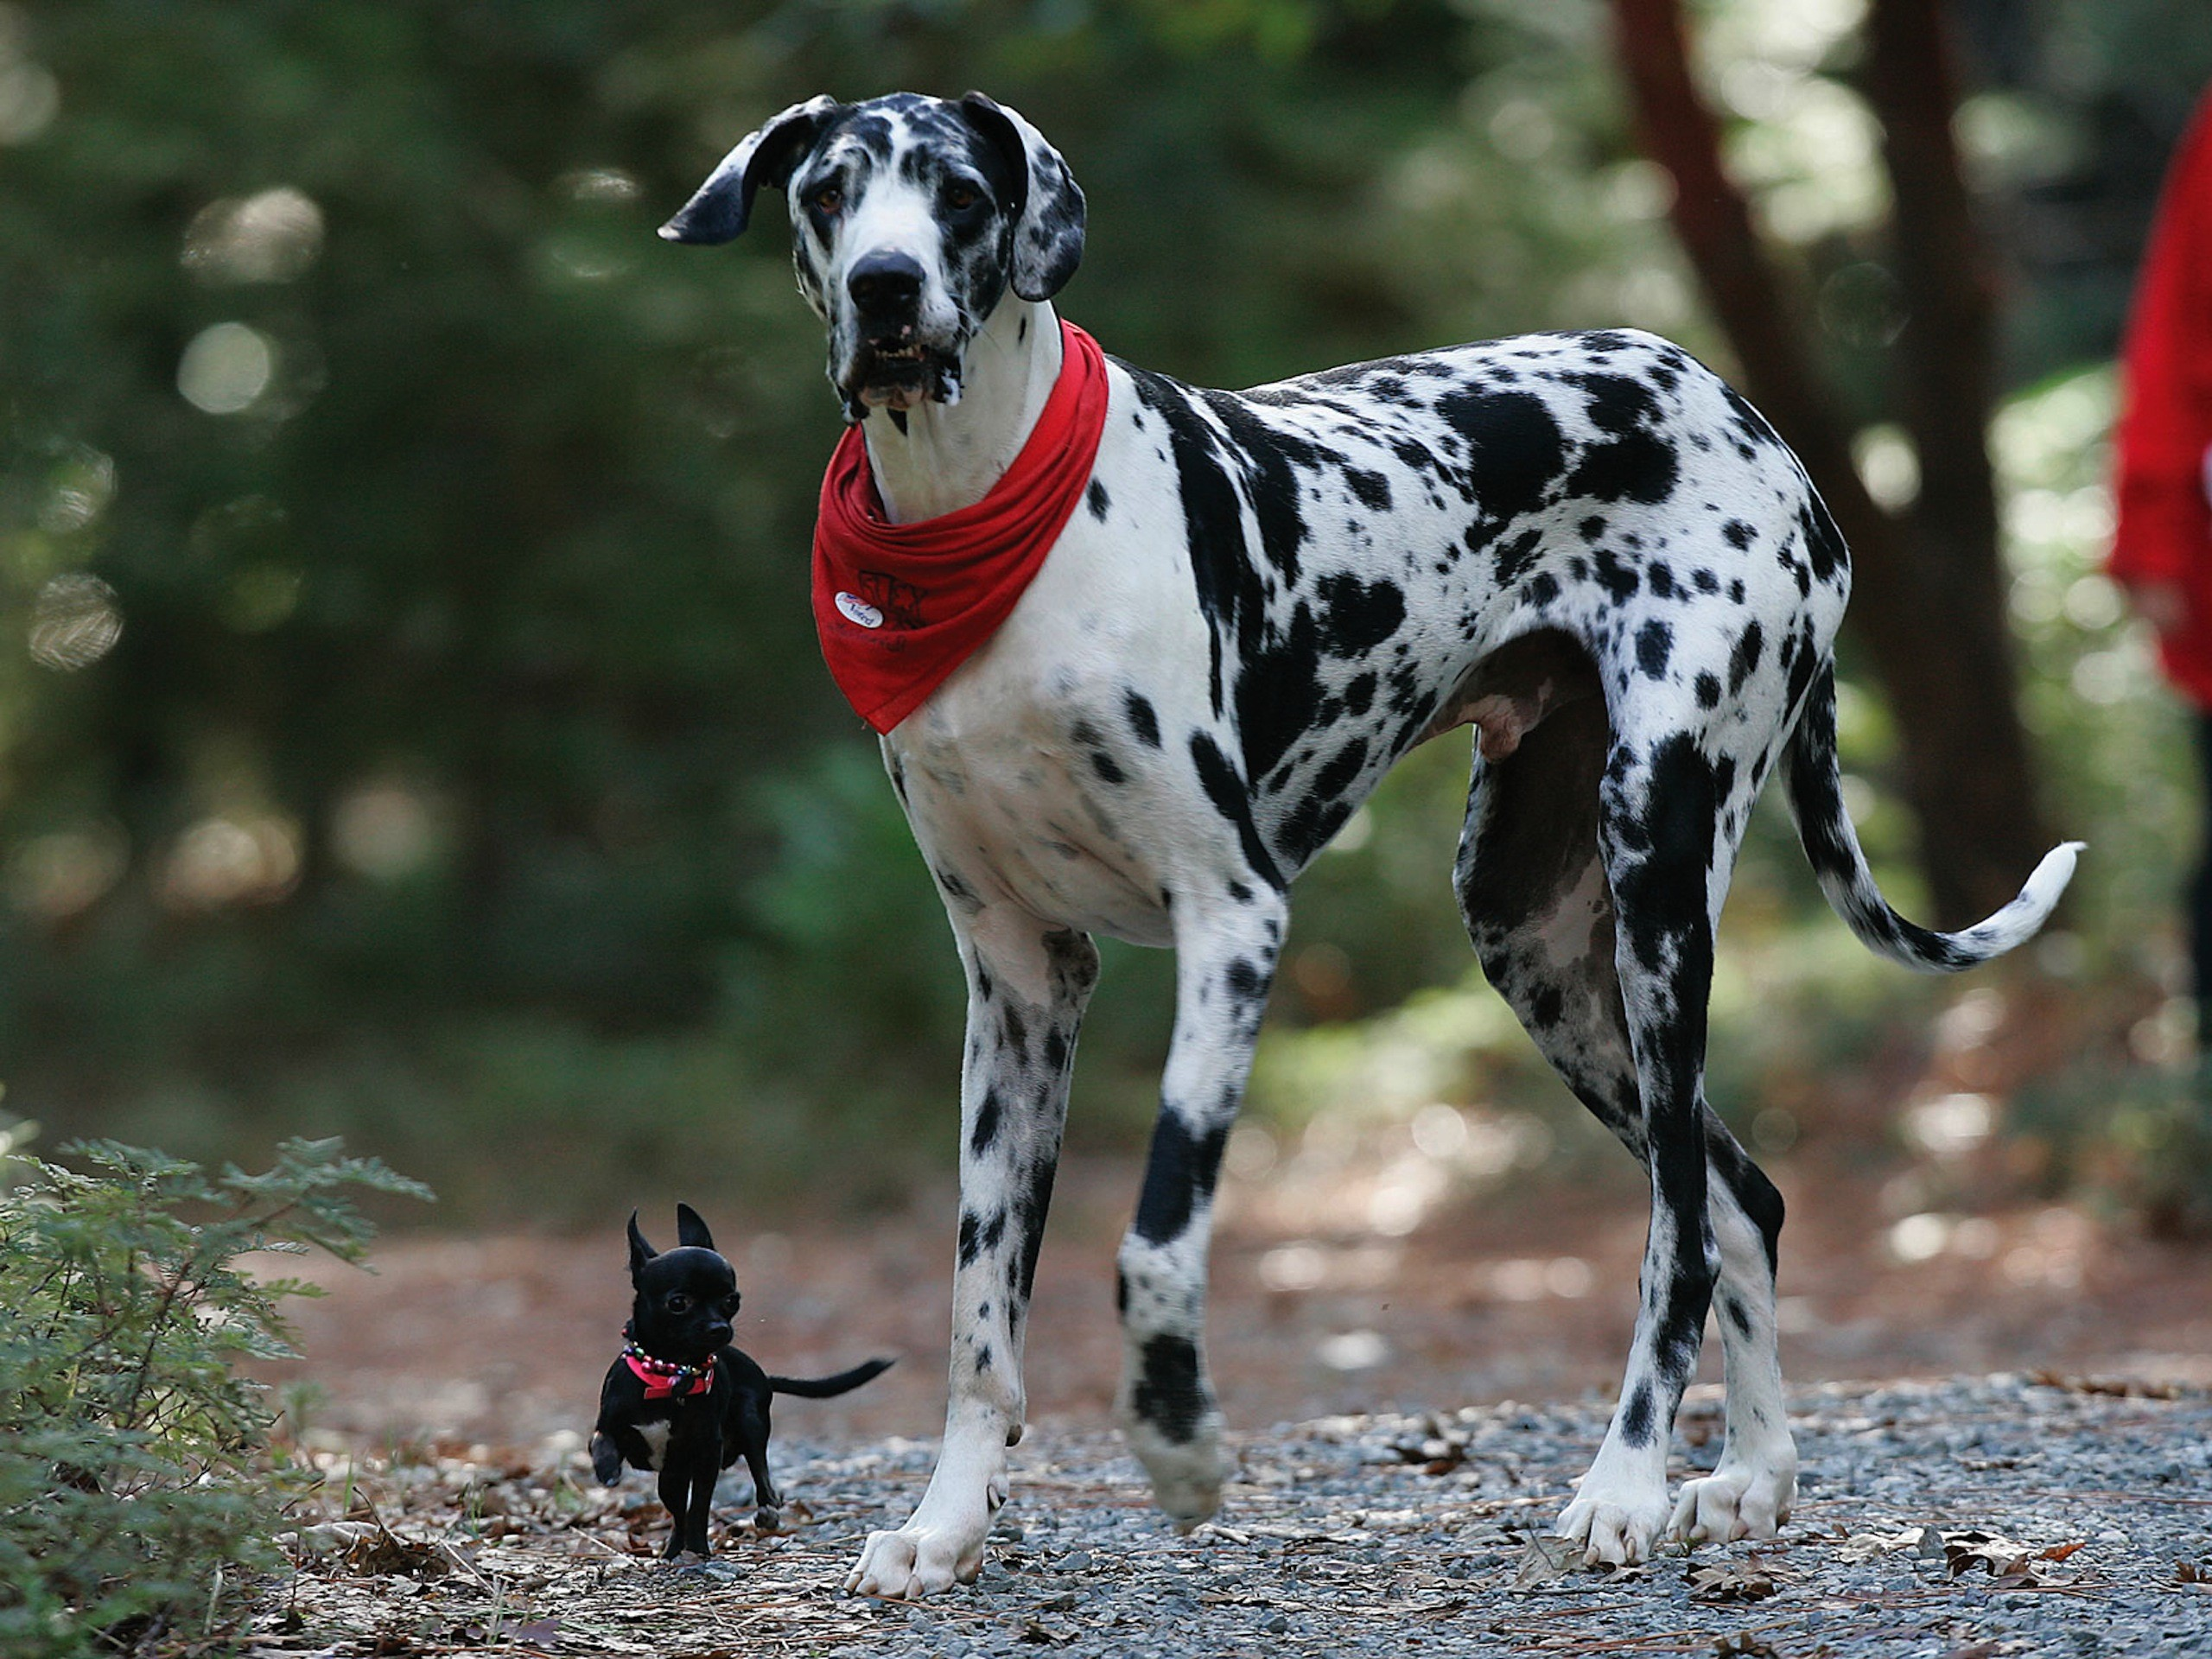 Great Dane Dog Wallpapers: Happy Animals Dogs Chihuahua Great Dane Wallpaper